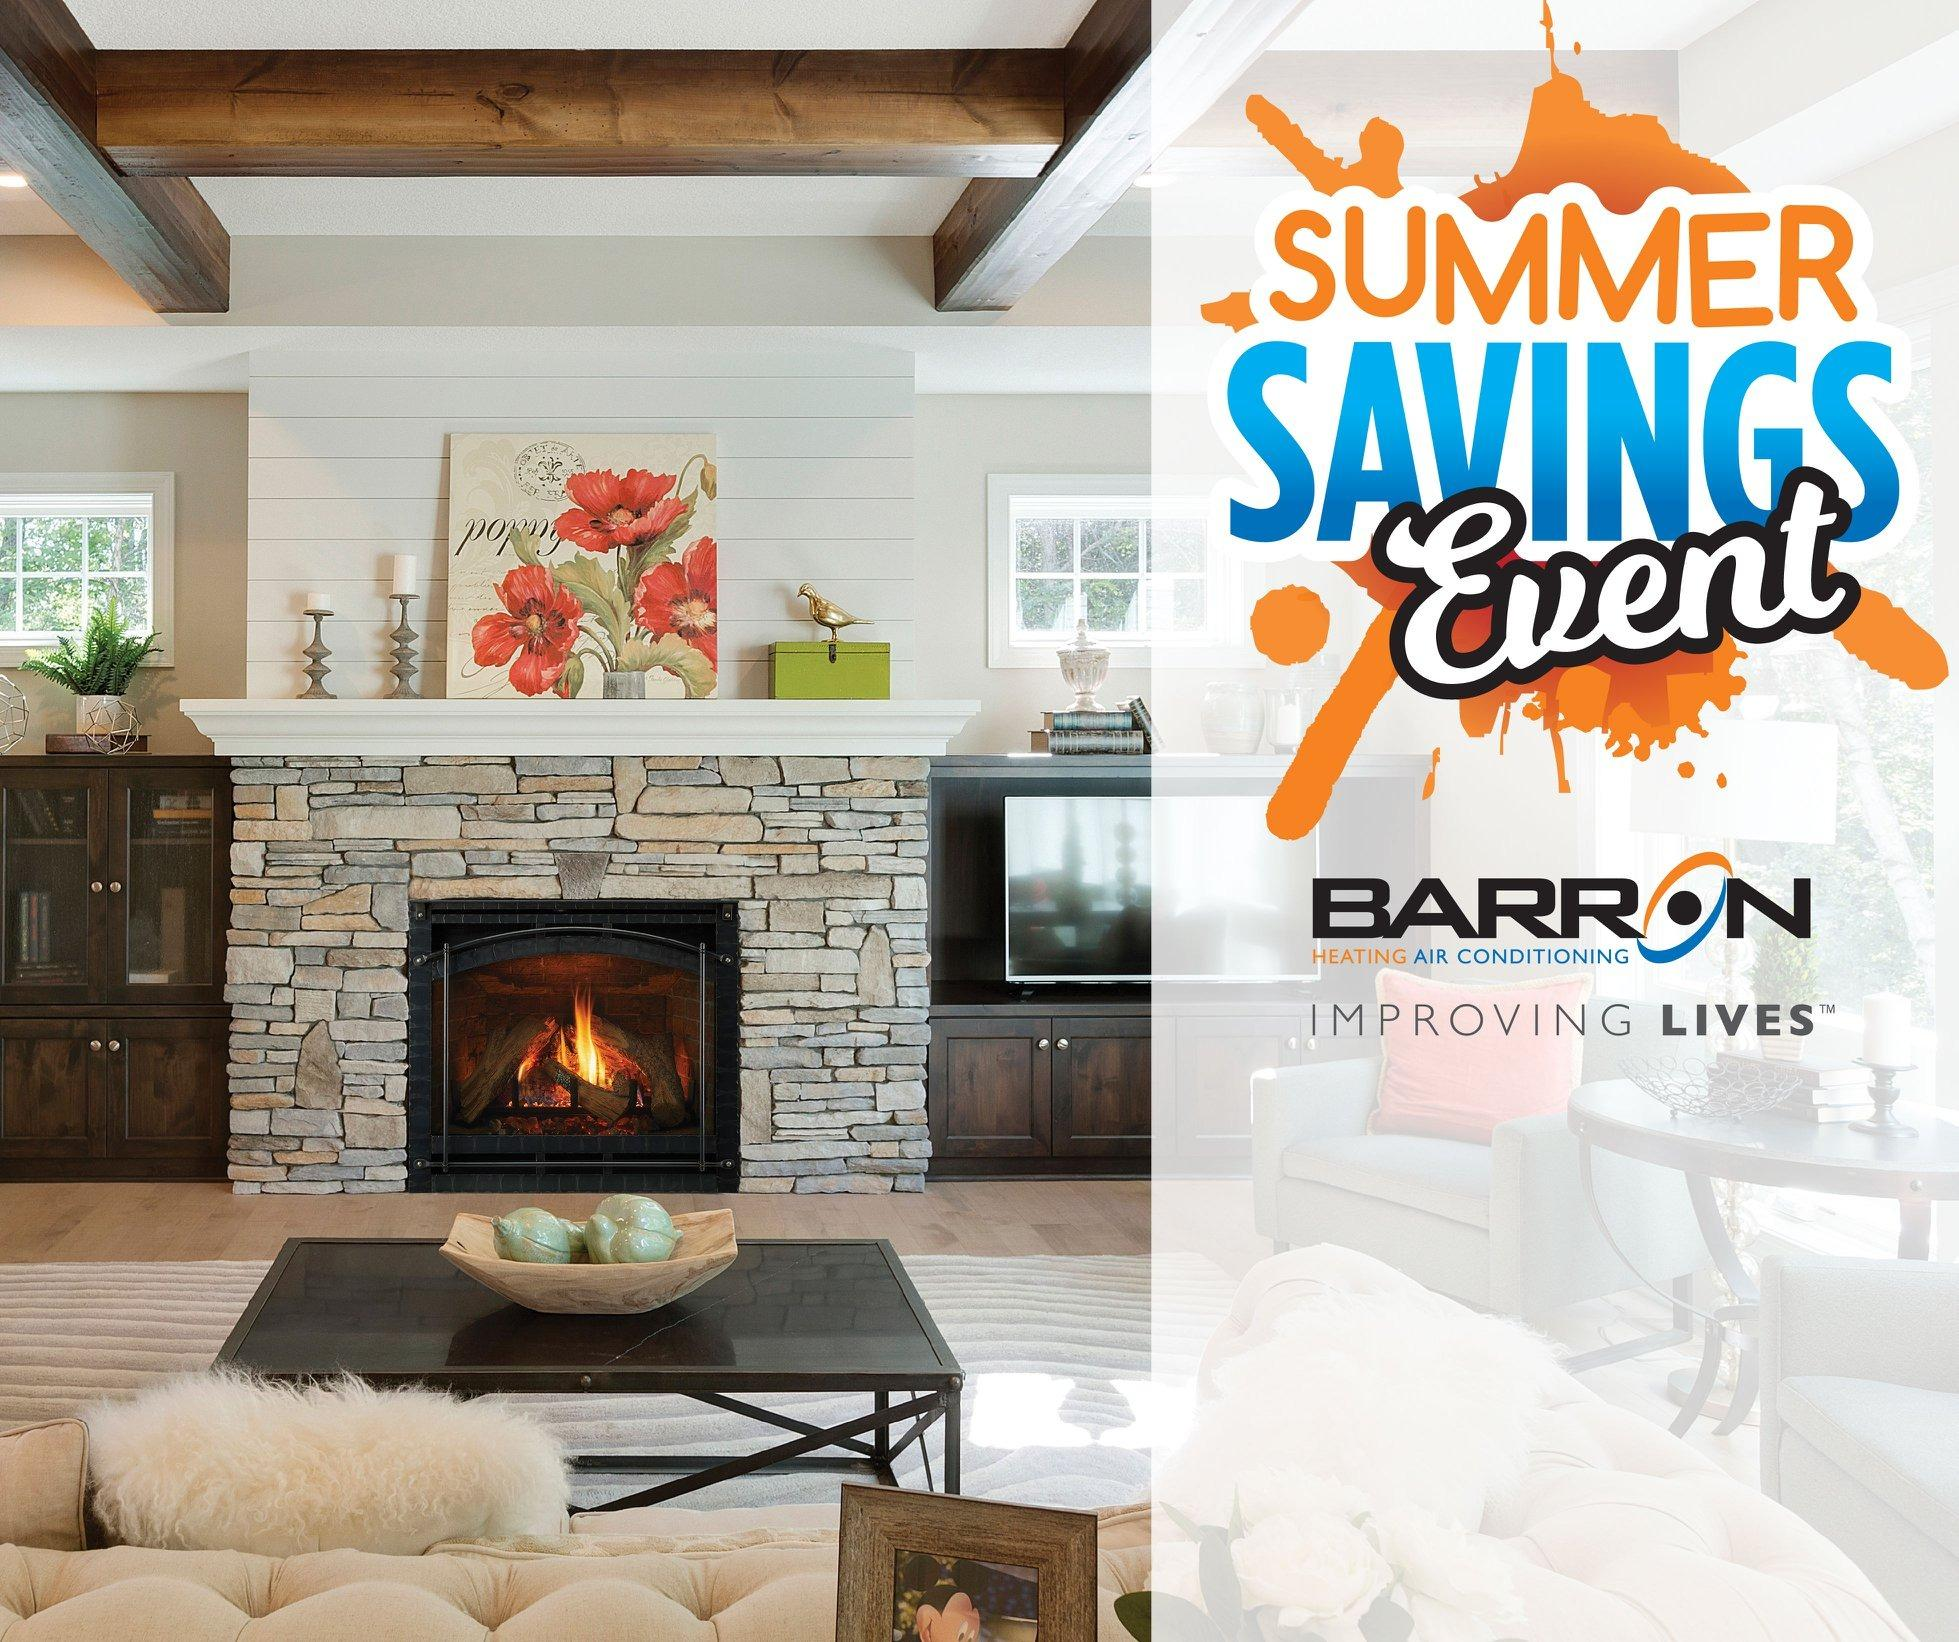 Barron Heating & Air Conditioning image 0